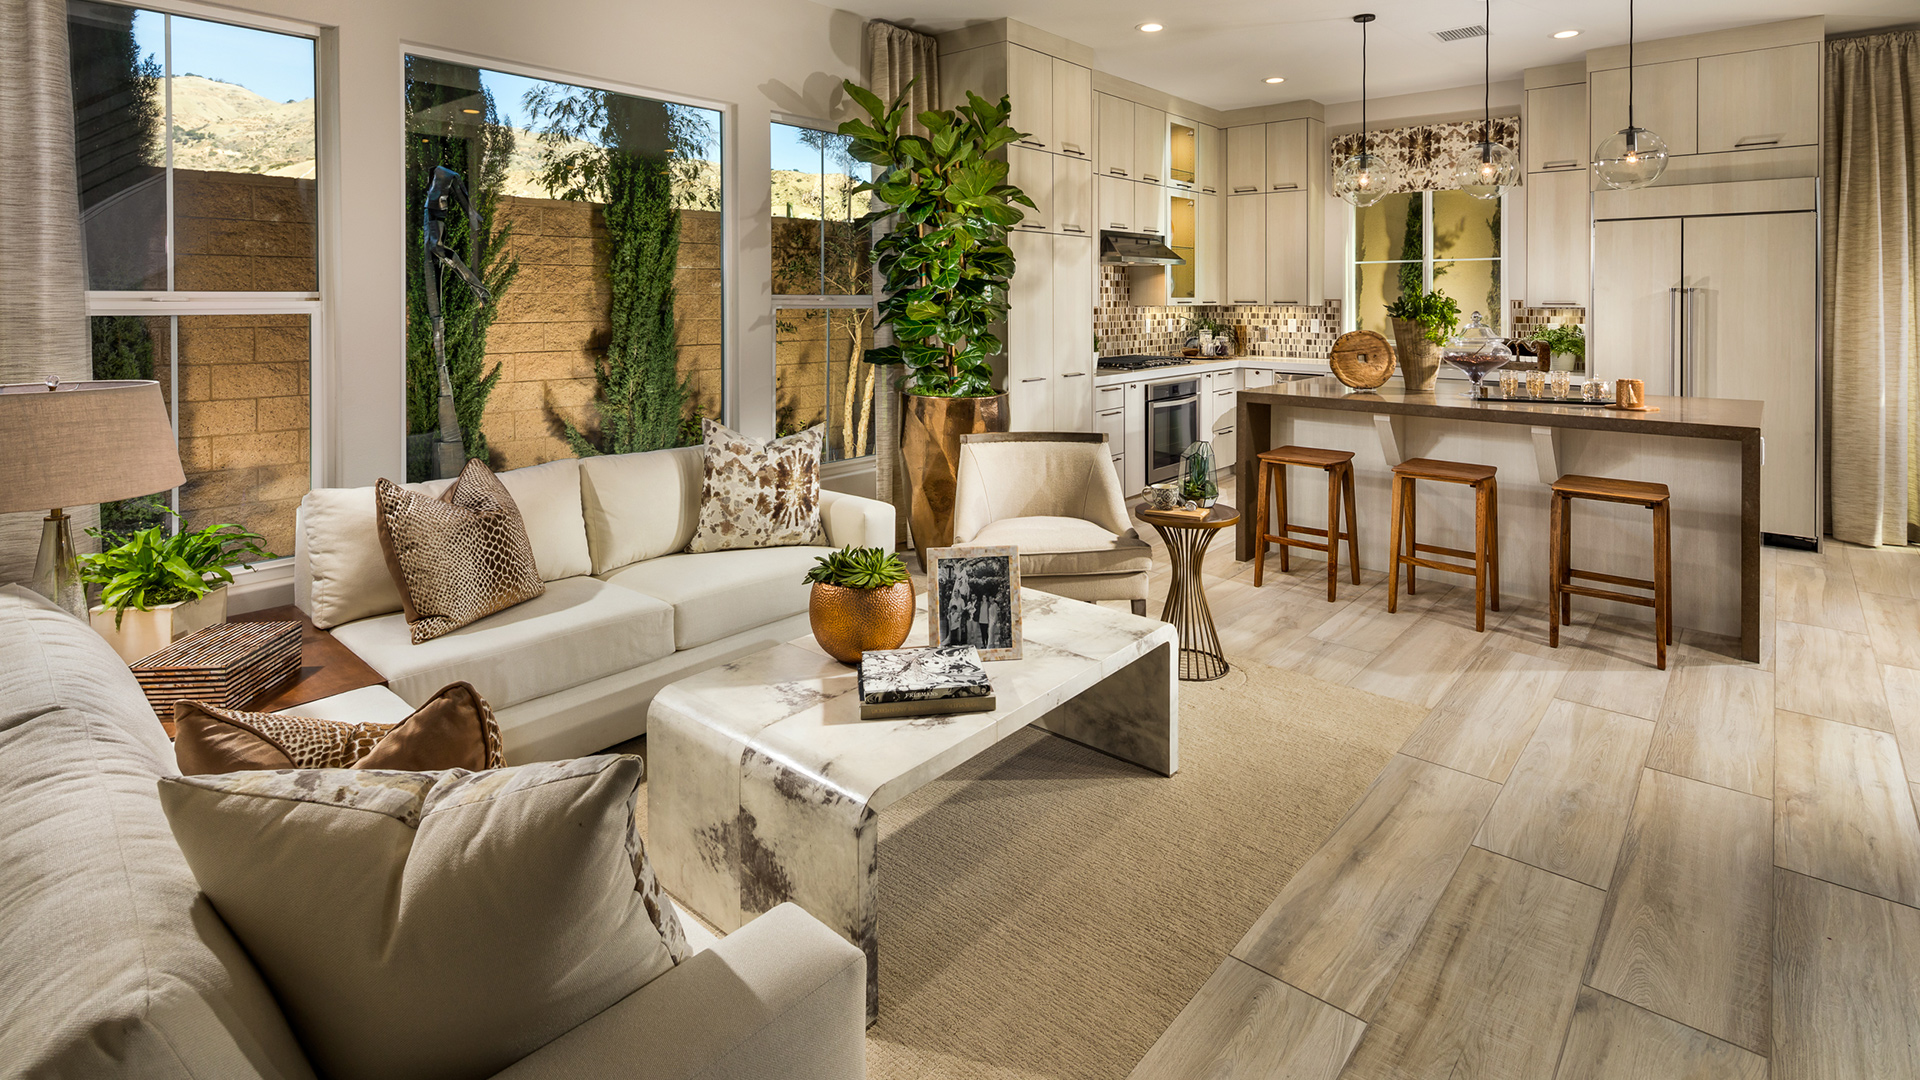 Open floor plans are perfect for hosting family and friends